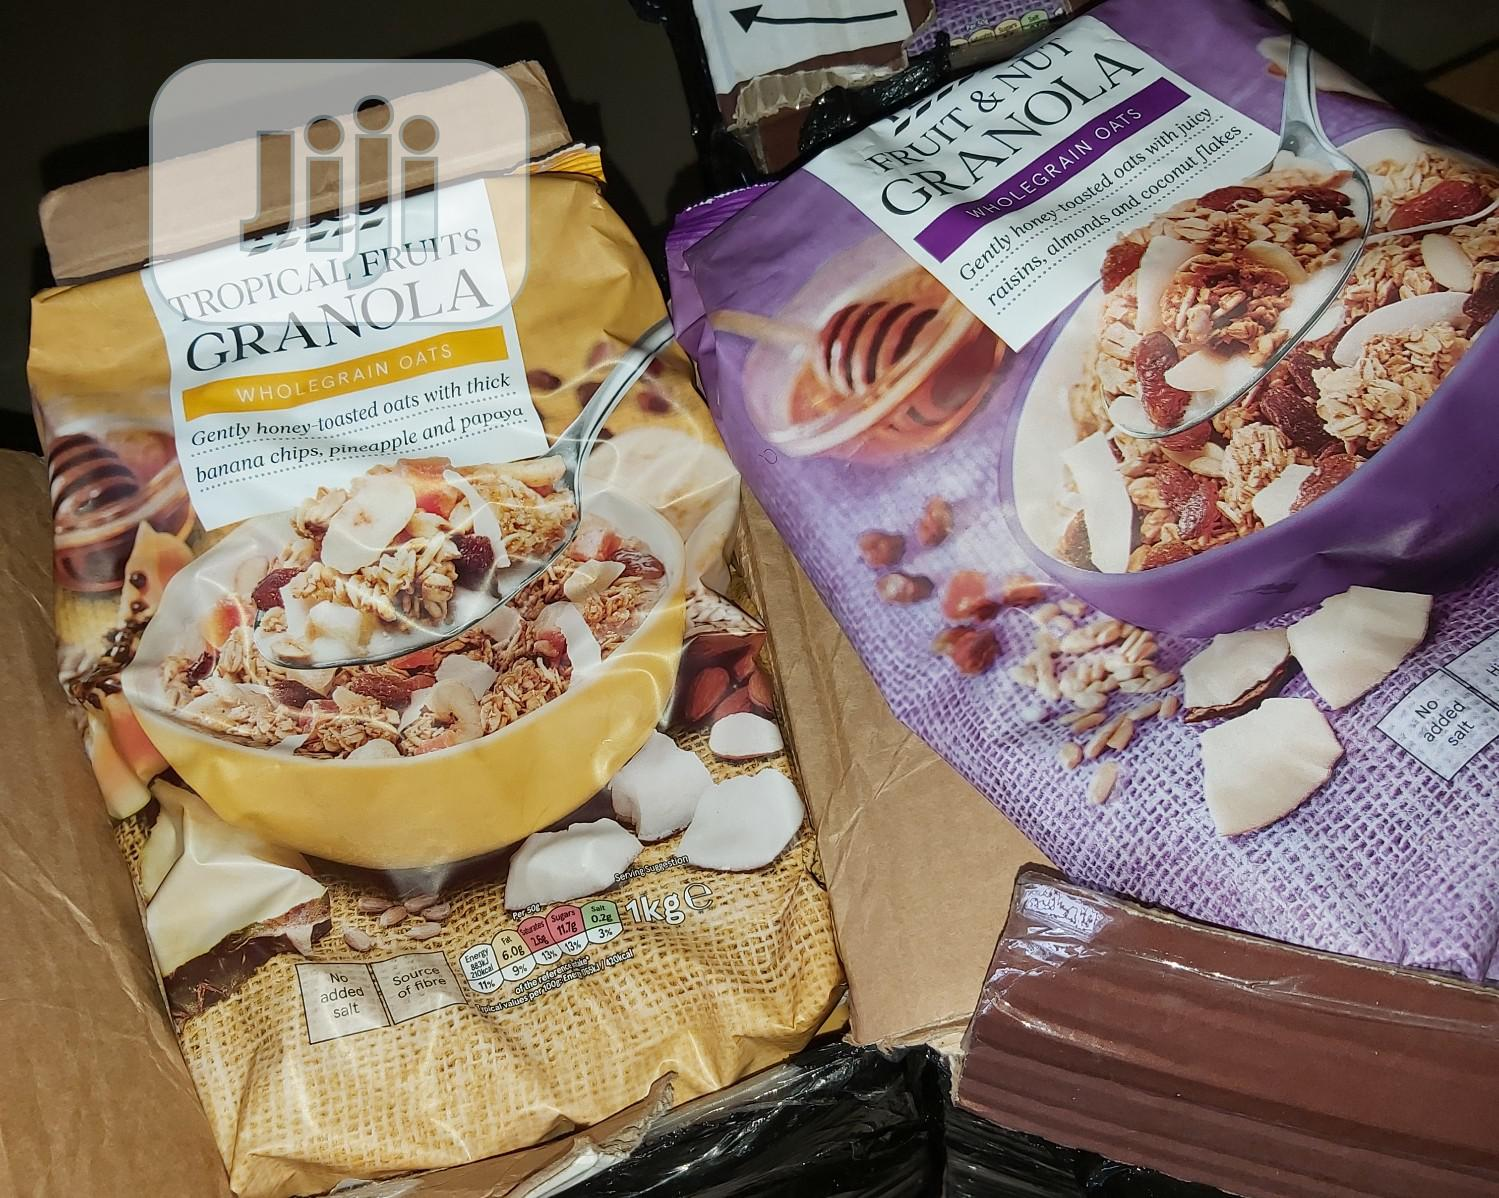 Tesco Fruit And Nut Granola 1kg | Meals & Drinks for sale in Surulere, Lagos State, Nigeria